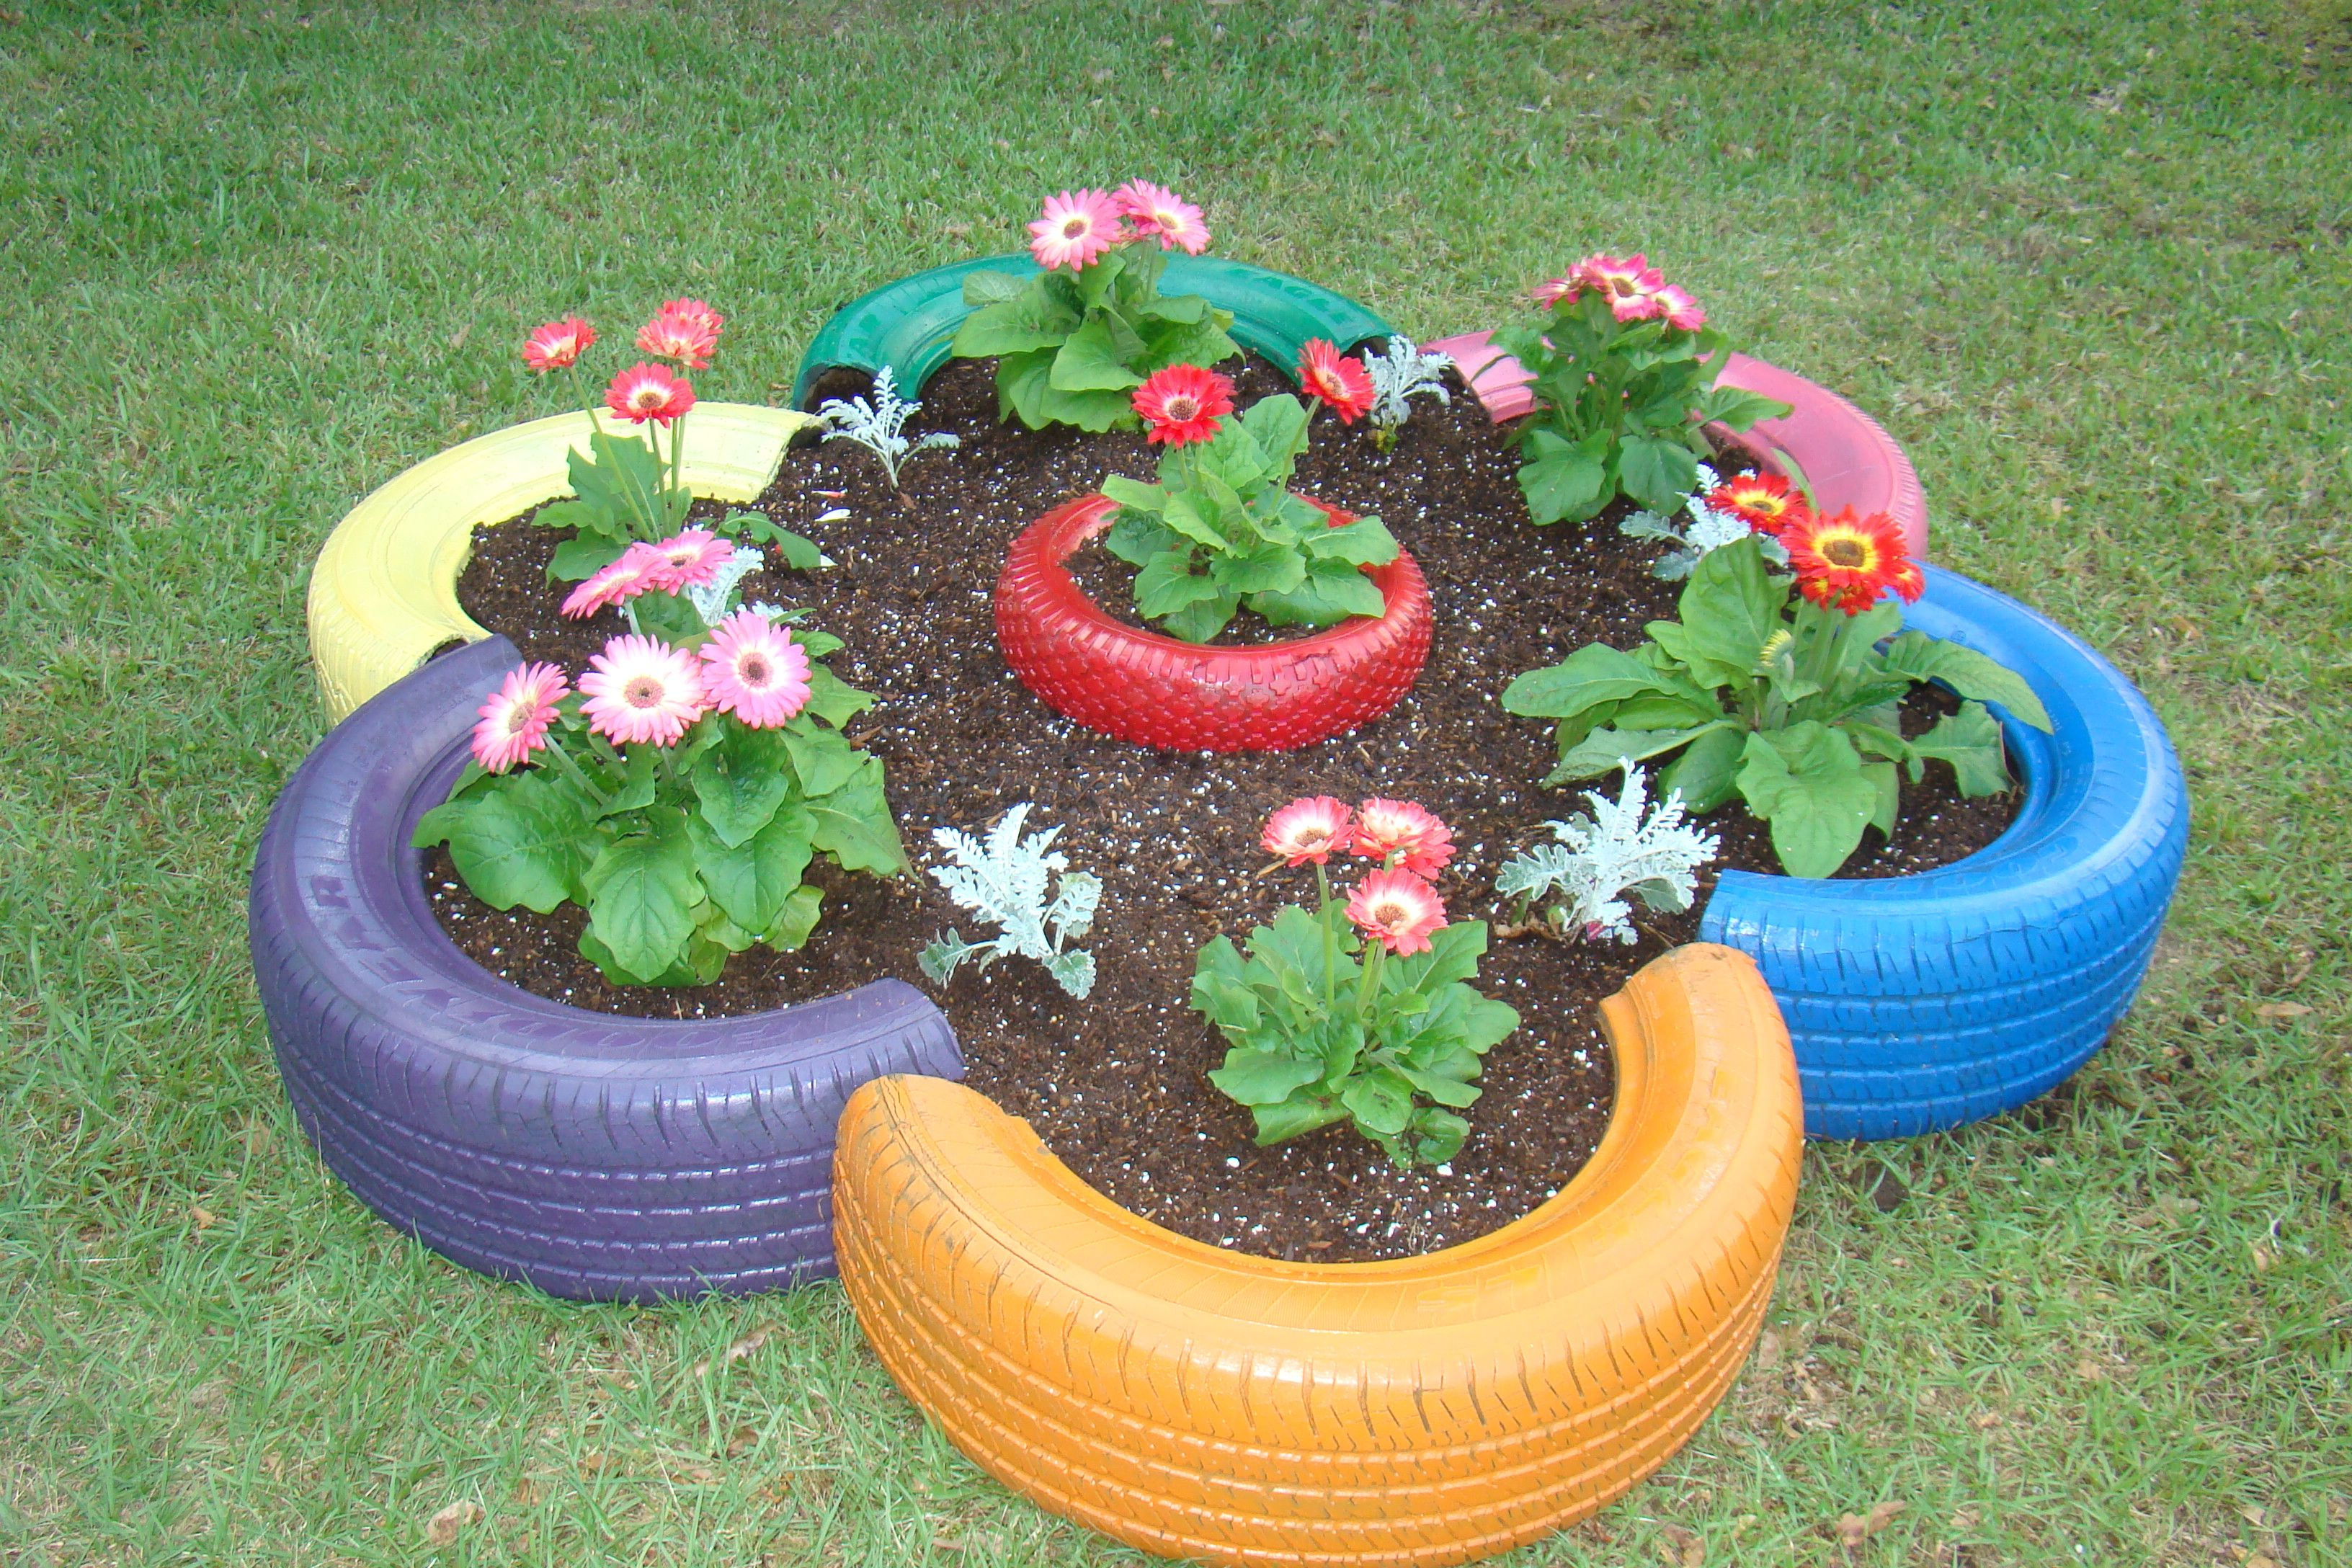 flower bed made from old tires and small tire in the center - Garden Ideas Using Old Tires